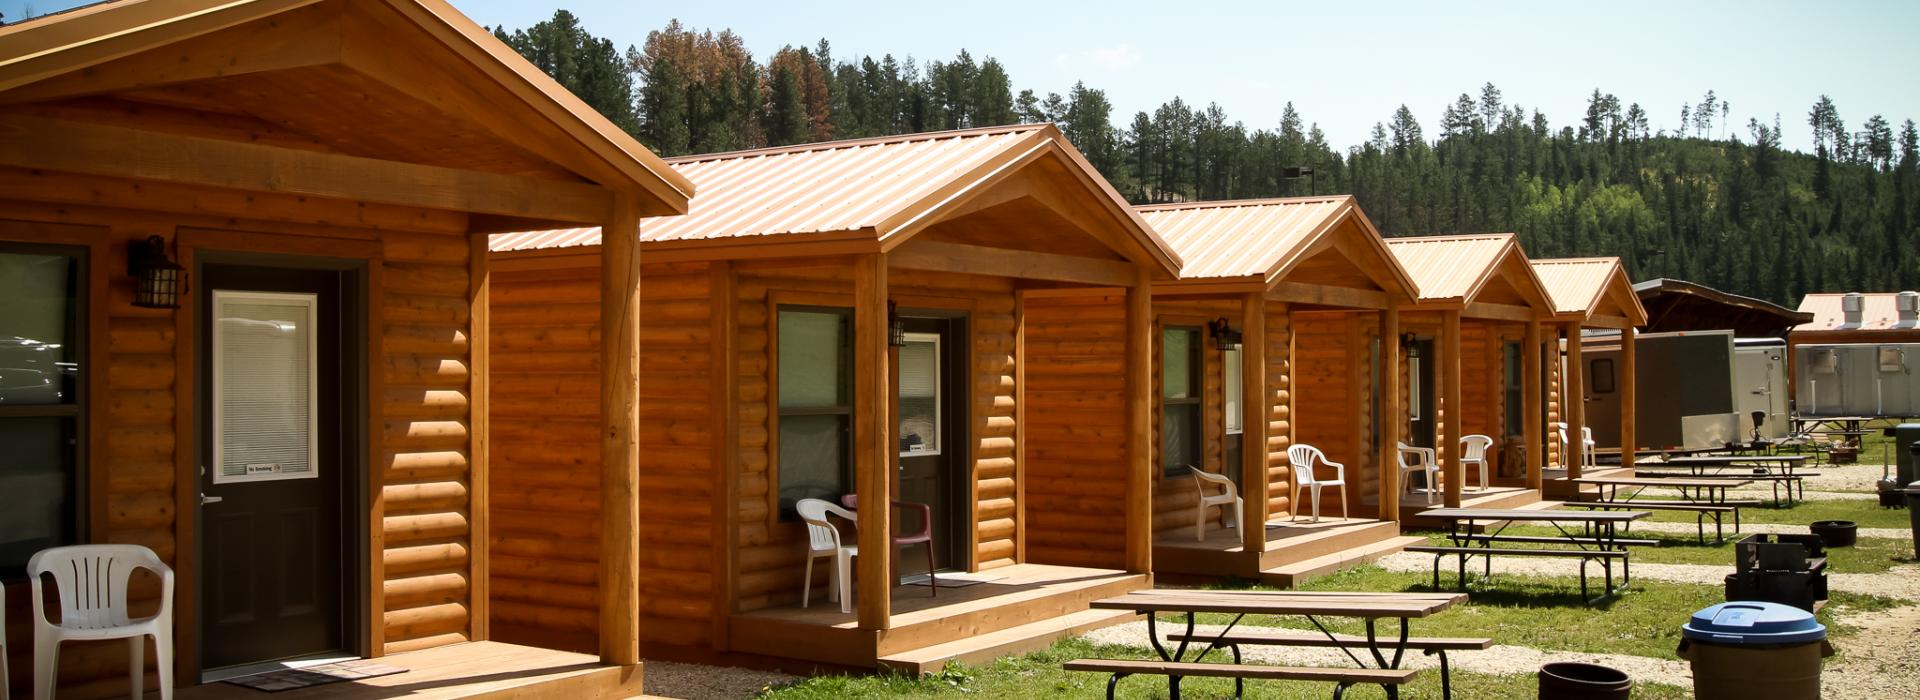 Steel wheel campground family camping near deadwood for Nearby campgrounds with cabins